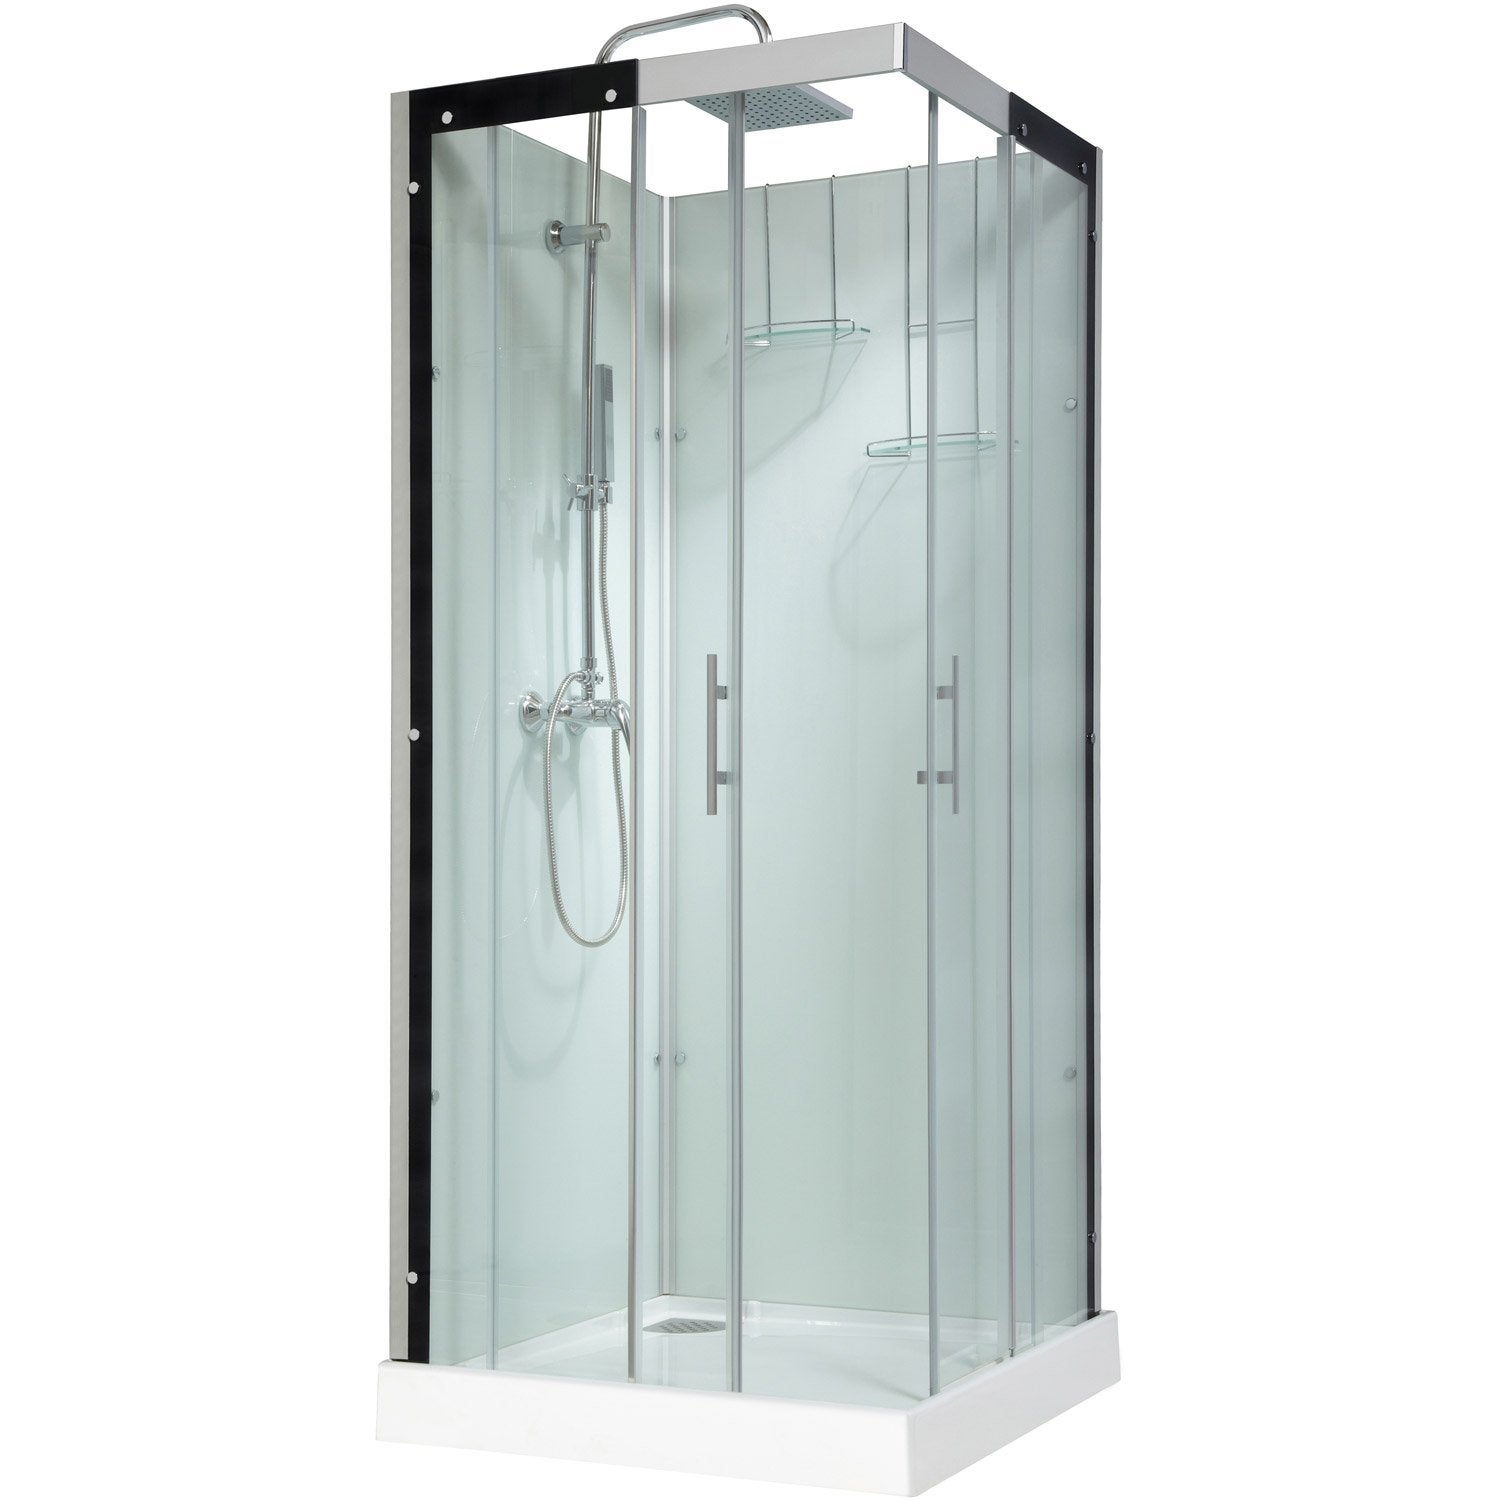 cabine de douche carr 90x90 cm thalaglass 2 mitigeur. Black Bedroom Furniture Sets. Home Design Ideas